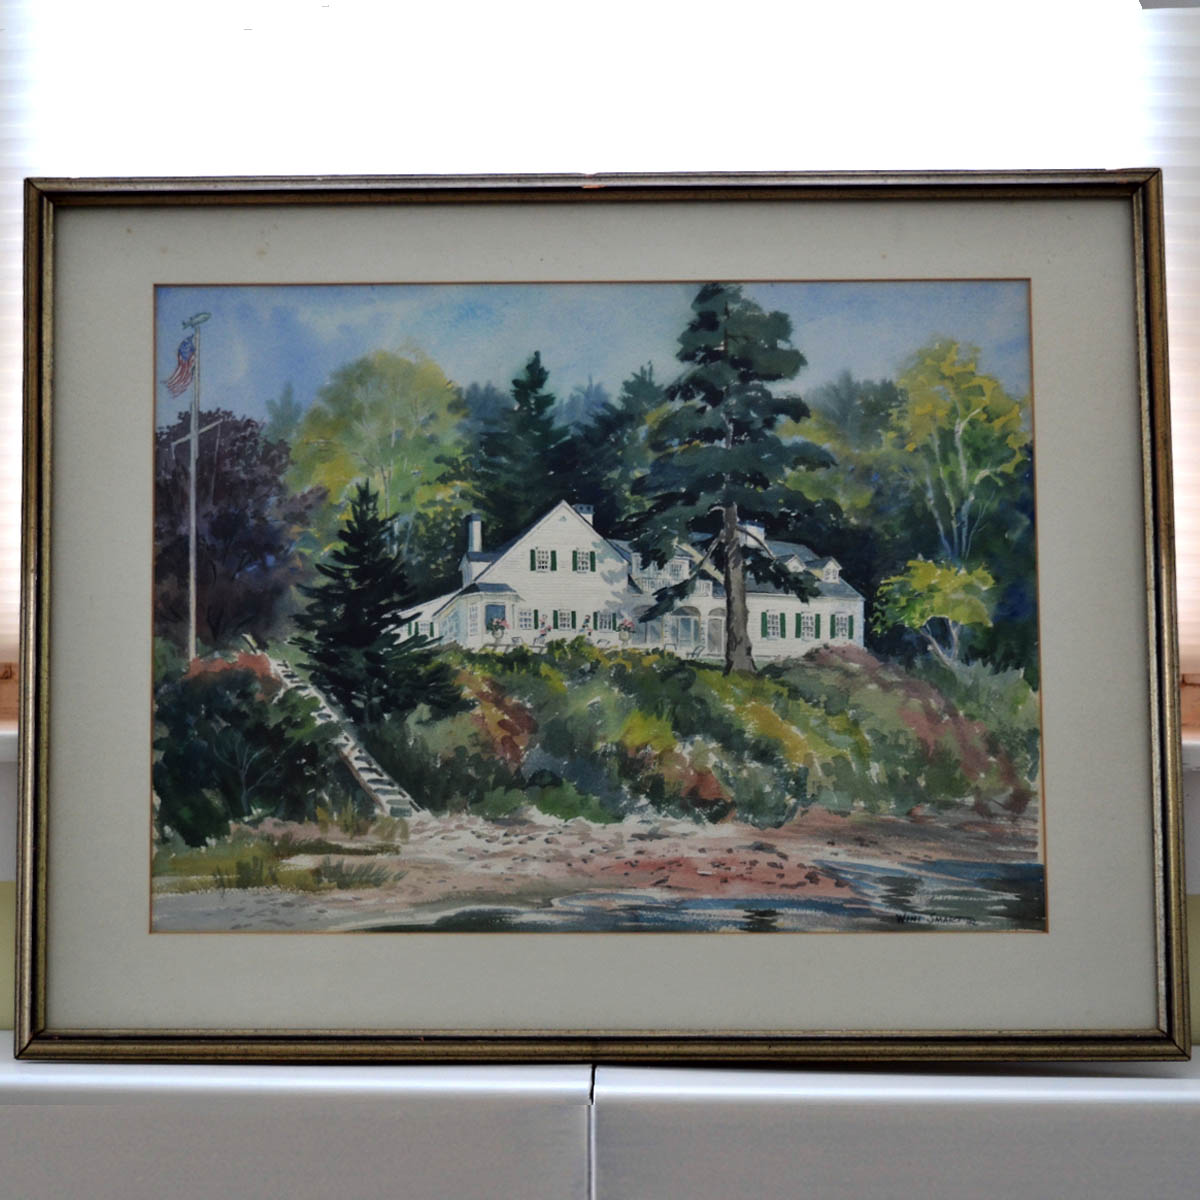 Winnie Smart Watercolor - An anonymous donor generously contributed this original watercolor by celebrated artist, Winnie Smart. This large work would be the centerpiece of any wall in your home, and a worthy addition for any collector or lover of Winnie's work.